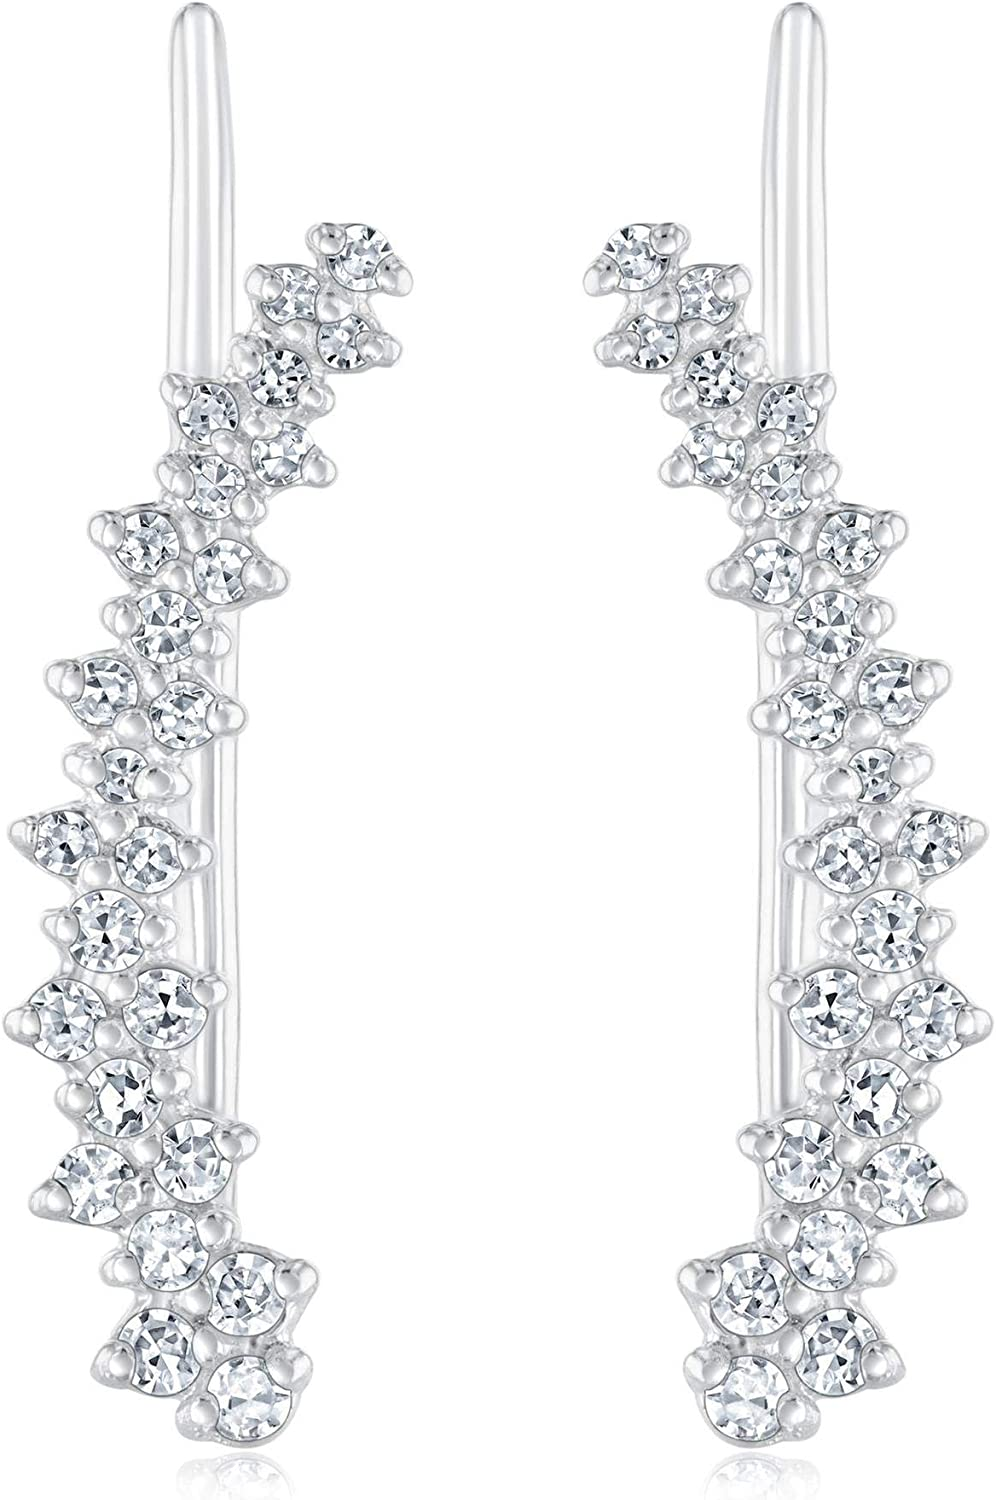 White Gold Diamond Cluster Curved Climber Earrings 1/4ctw